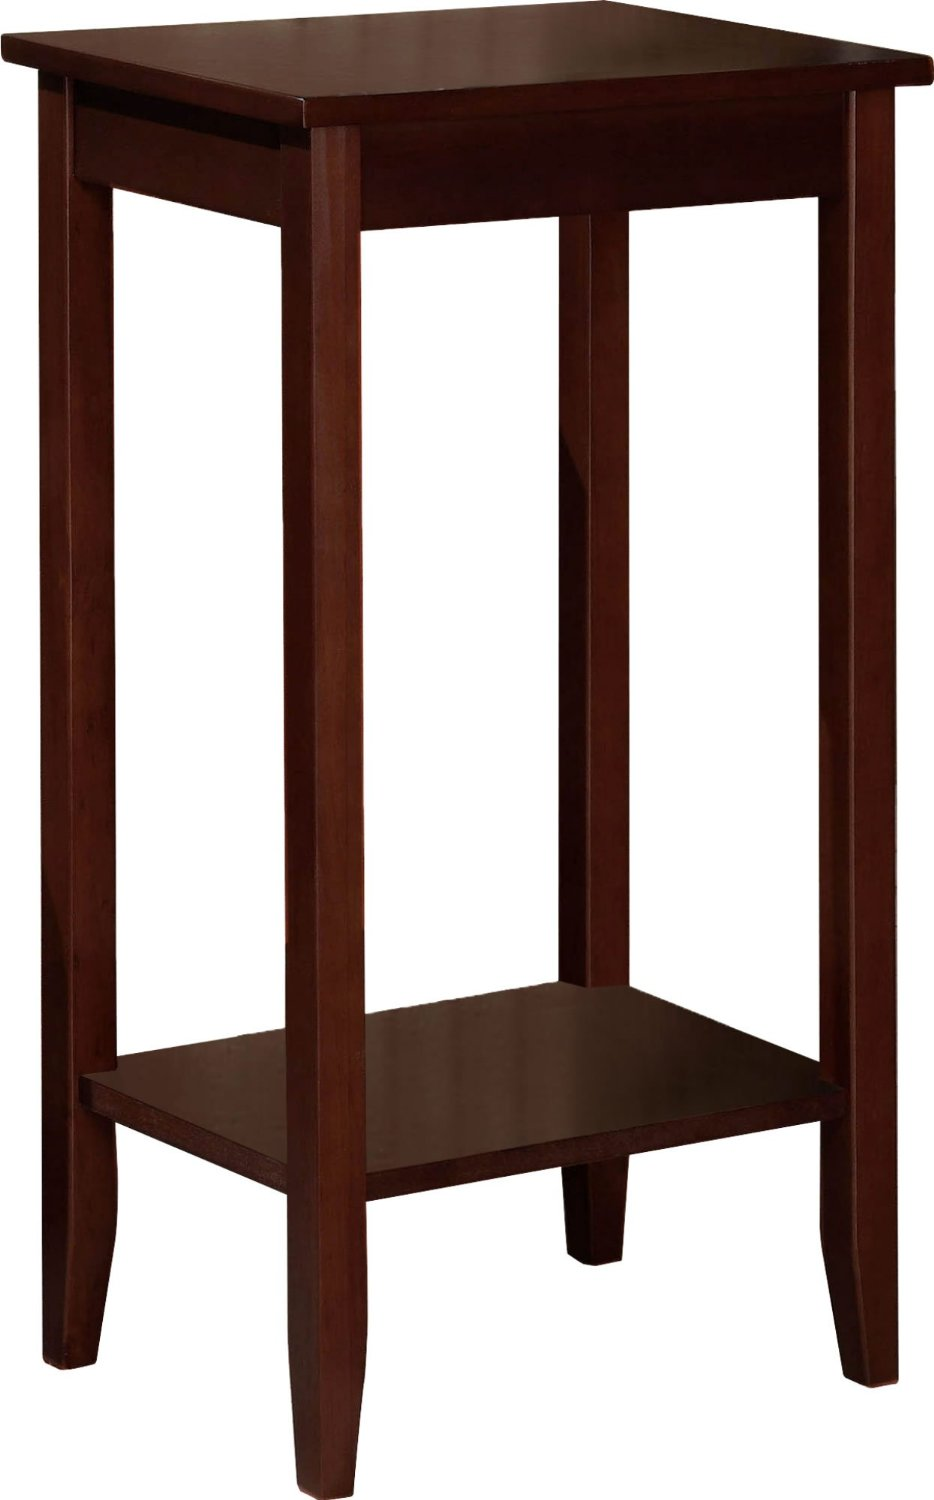 end table height